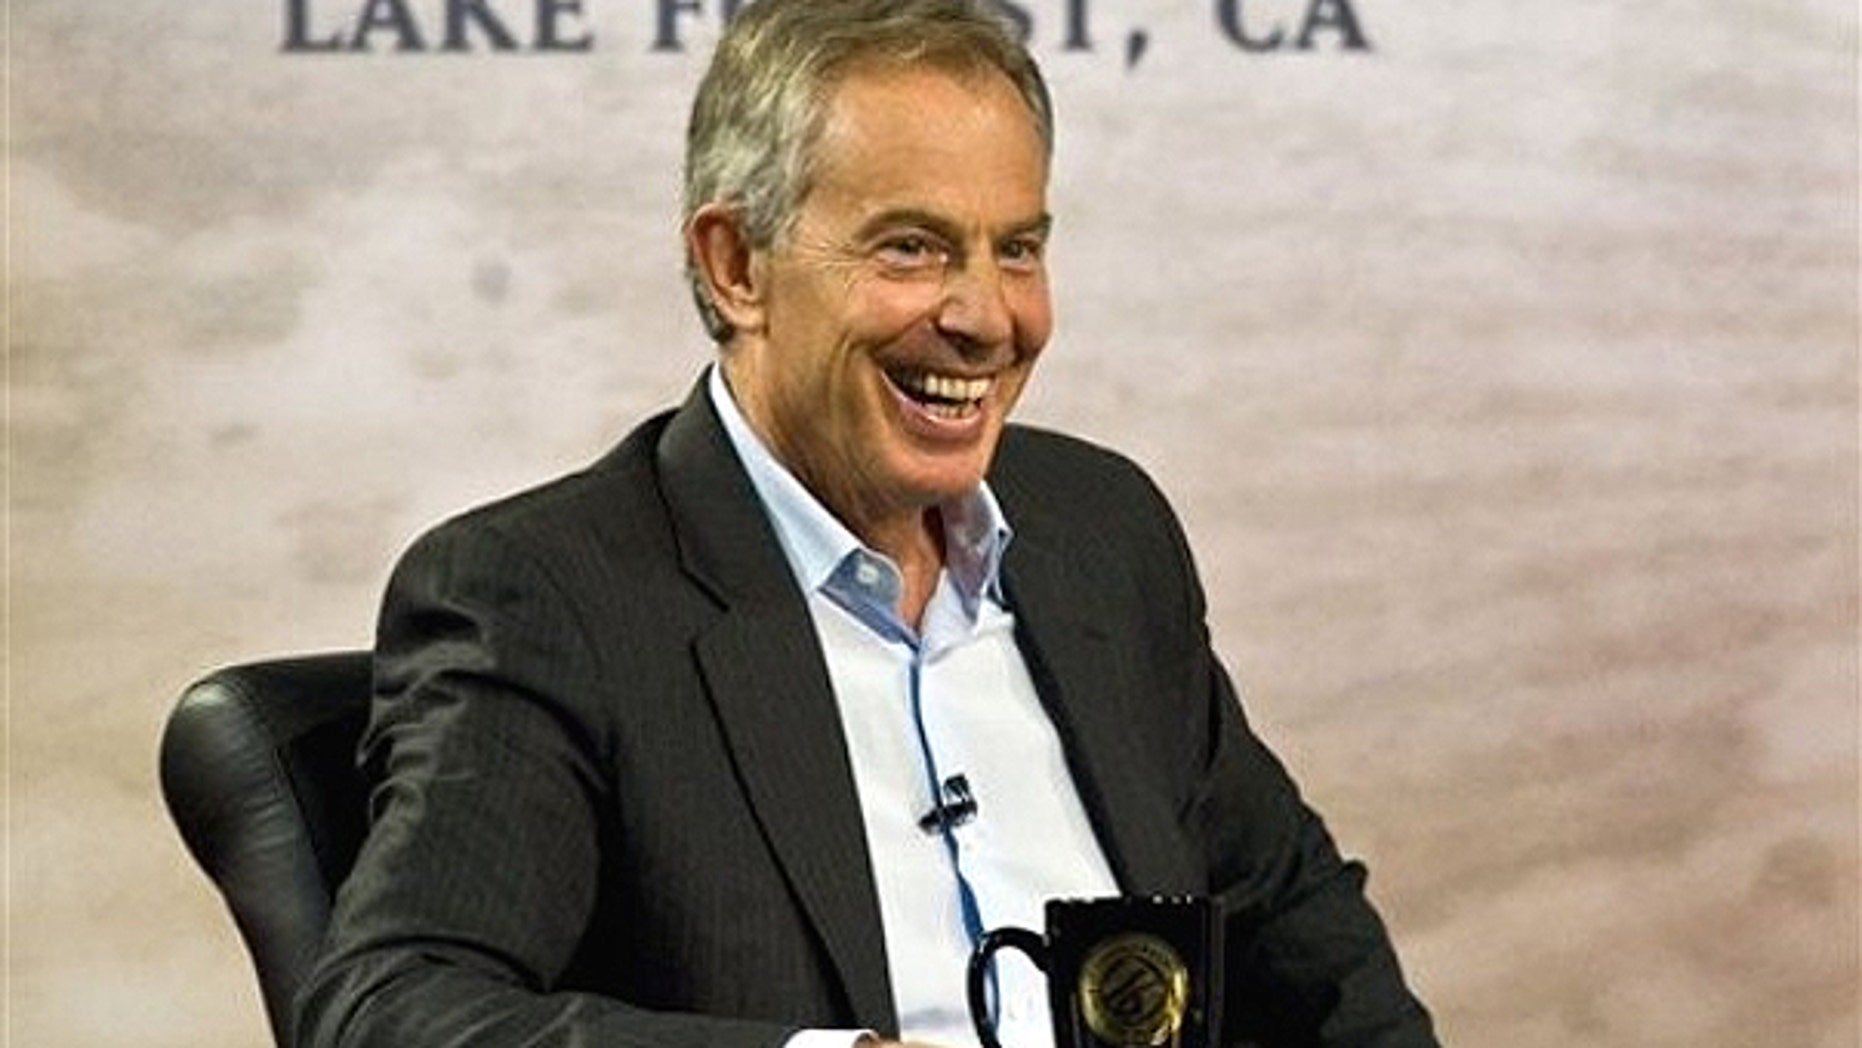 March 6: Former British Prime Minister Tony Blair laughs while talking with Pastor Rick Warren during the 'Civil Forum on Peace In a Globalized Economy' at Saddleback Church in Lake Forest, Calif.